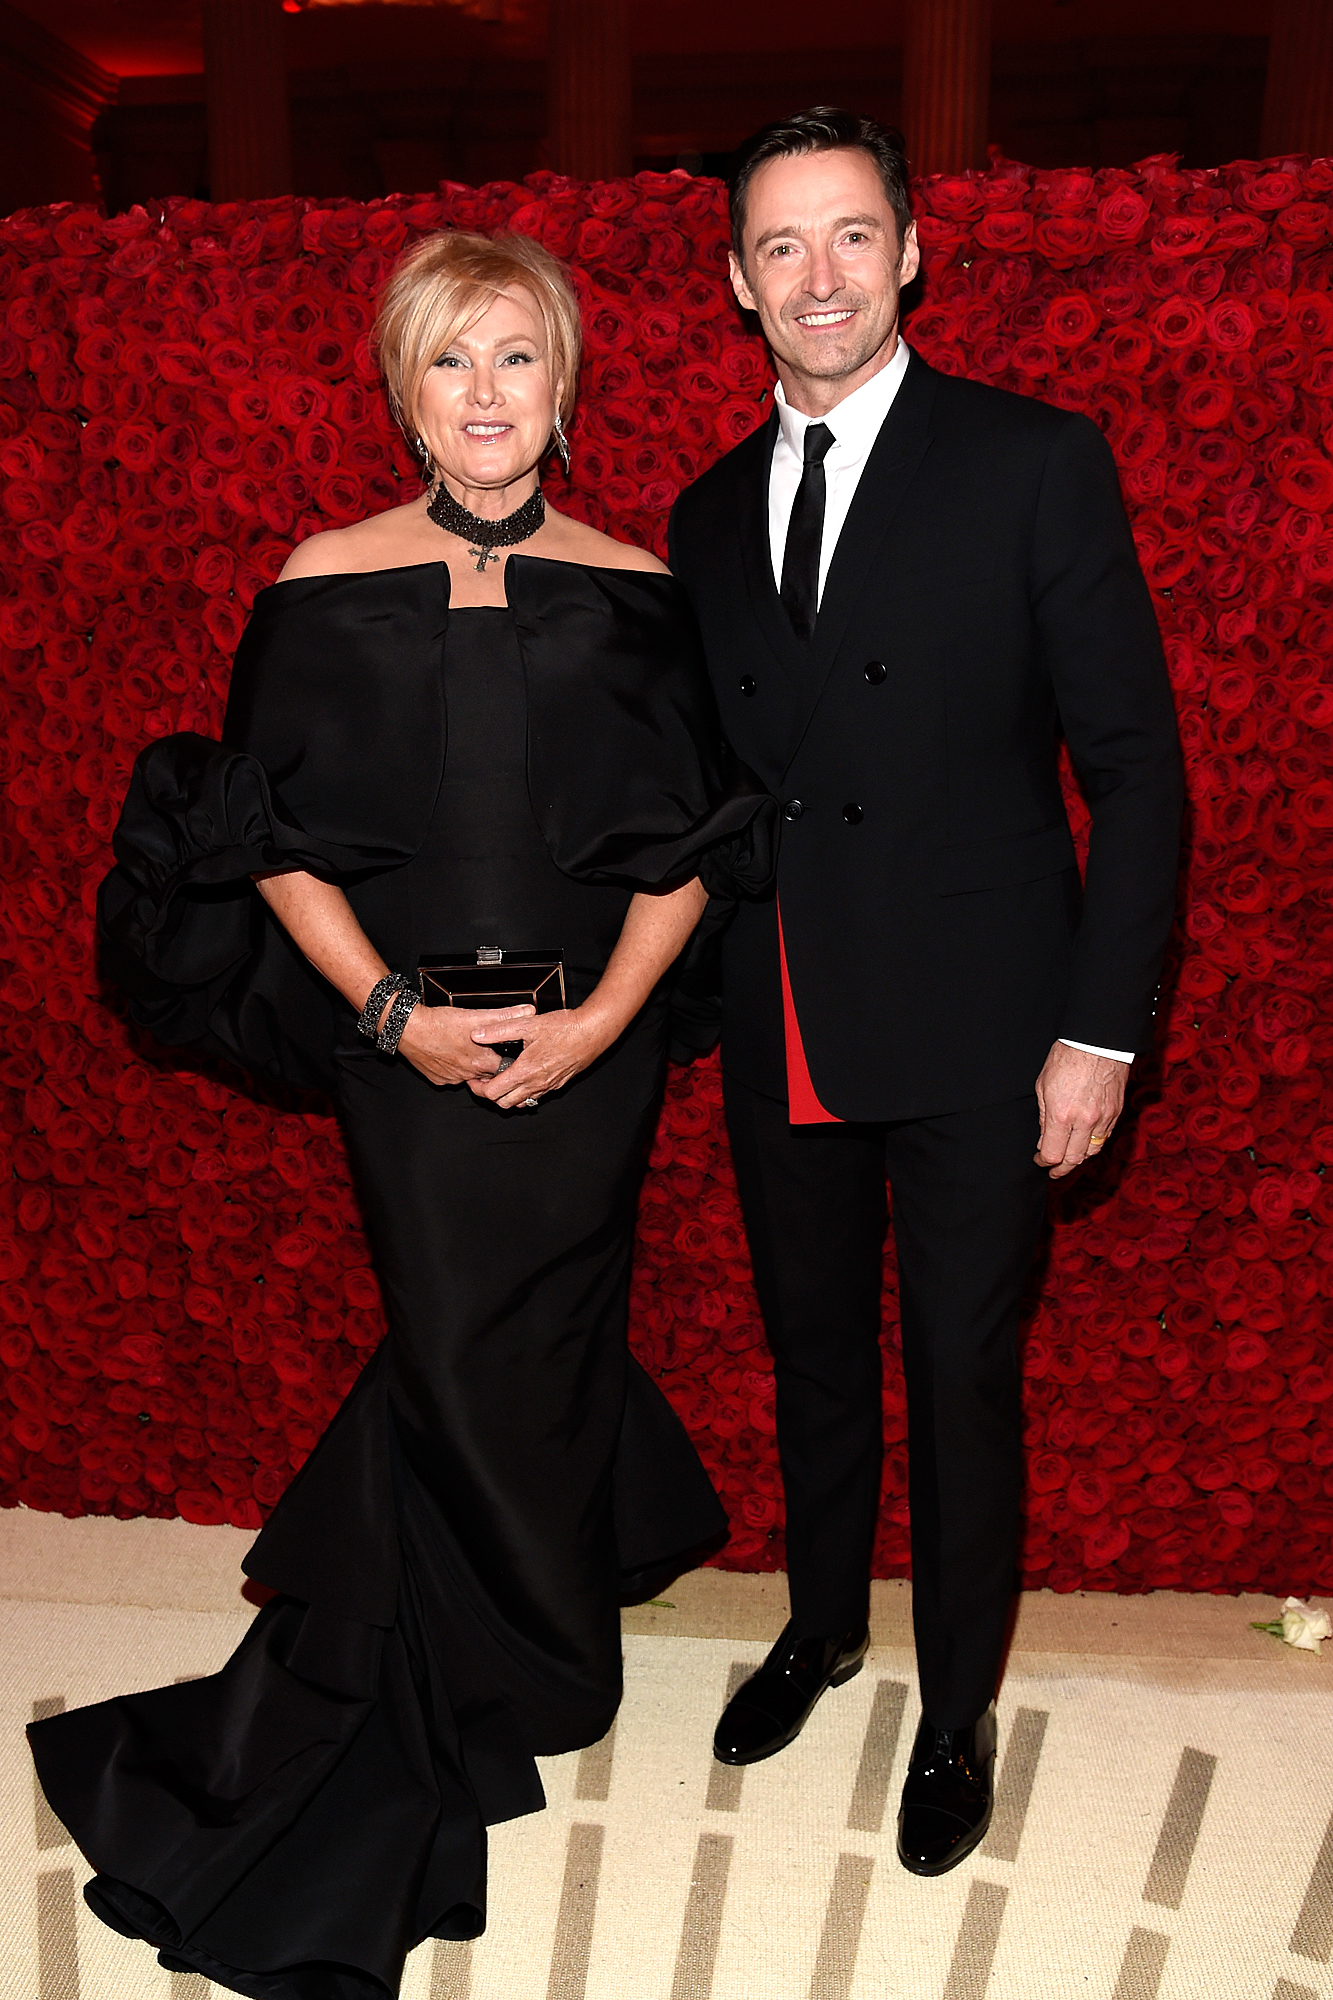 HUGH JACKMAN IN DIOR AND DEBORRA-LEE FURNESS IN CHRISTIAN SIRIANO